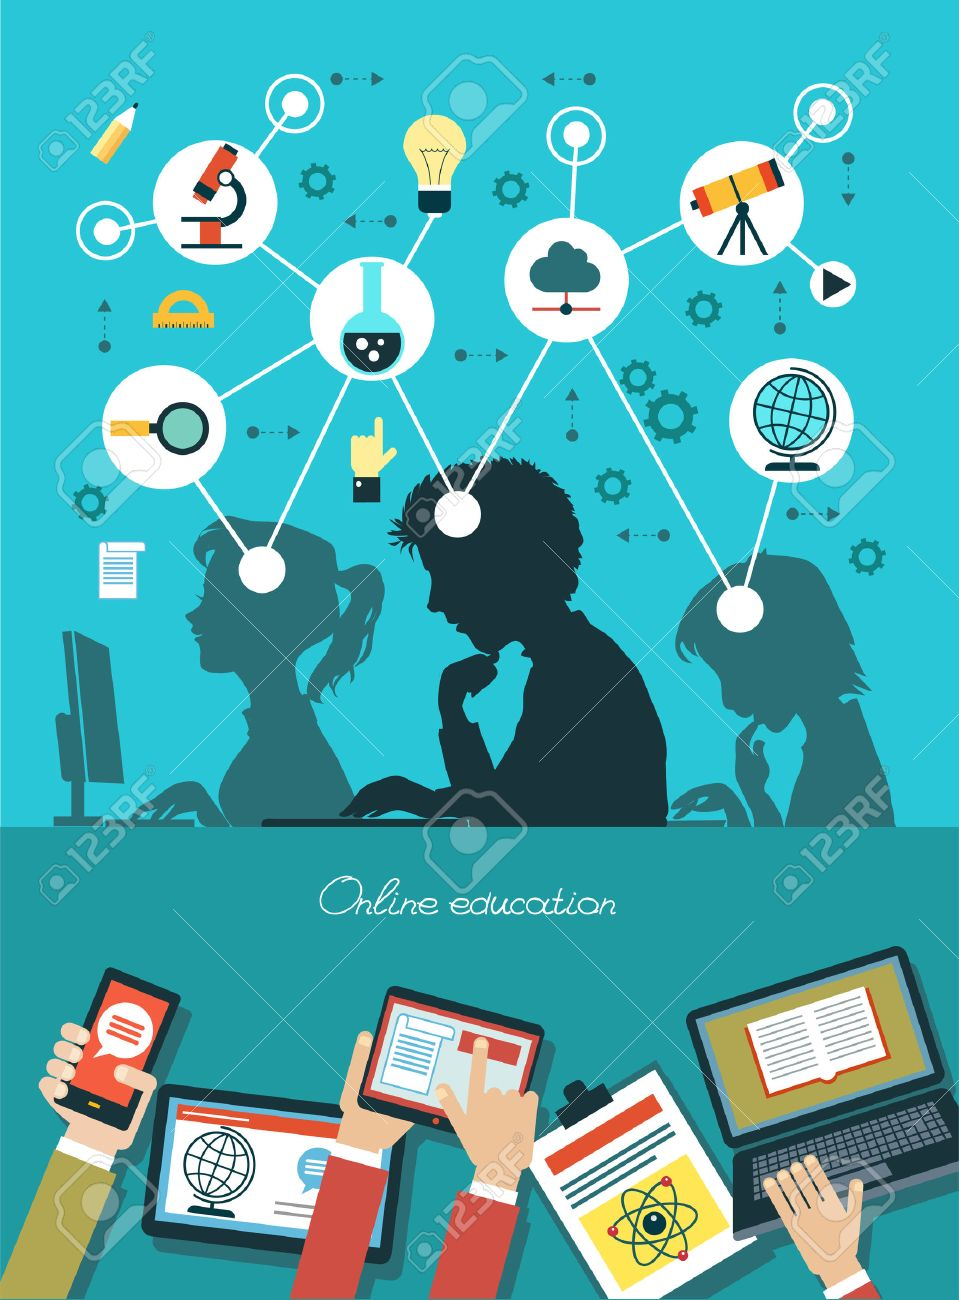 Icons education. Silhouette of students surrounded by icons of education. Concept online education. Human hand with a mobile phone, tablet, laptop and interface icons. - 46874169